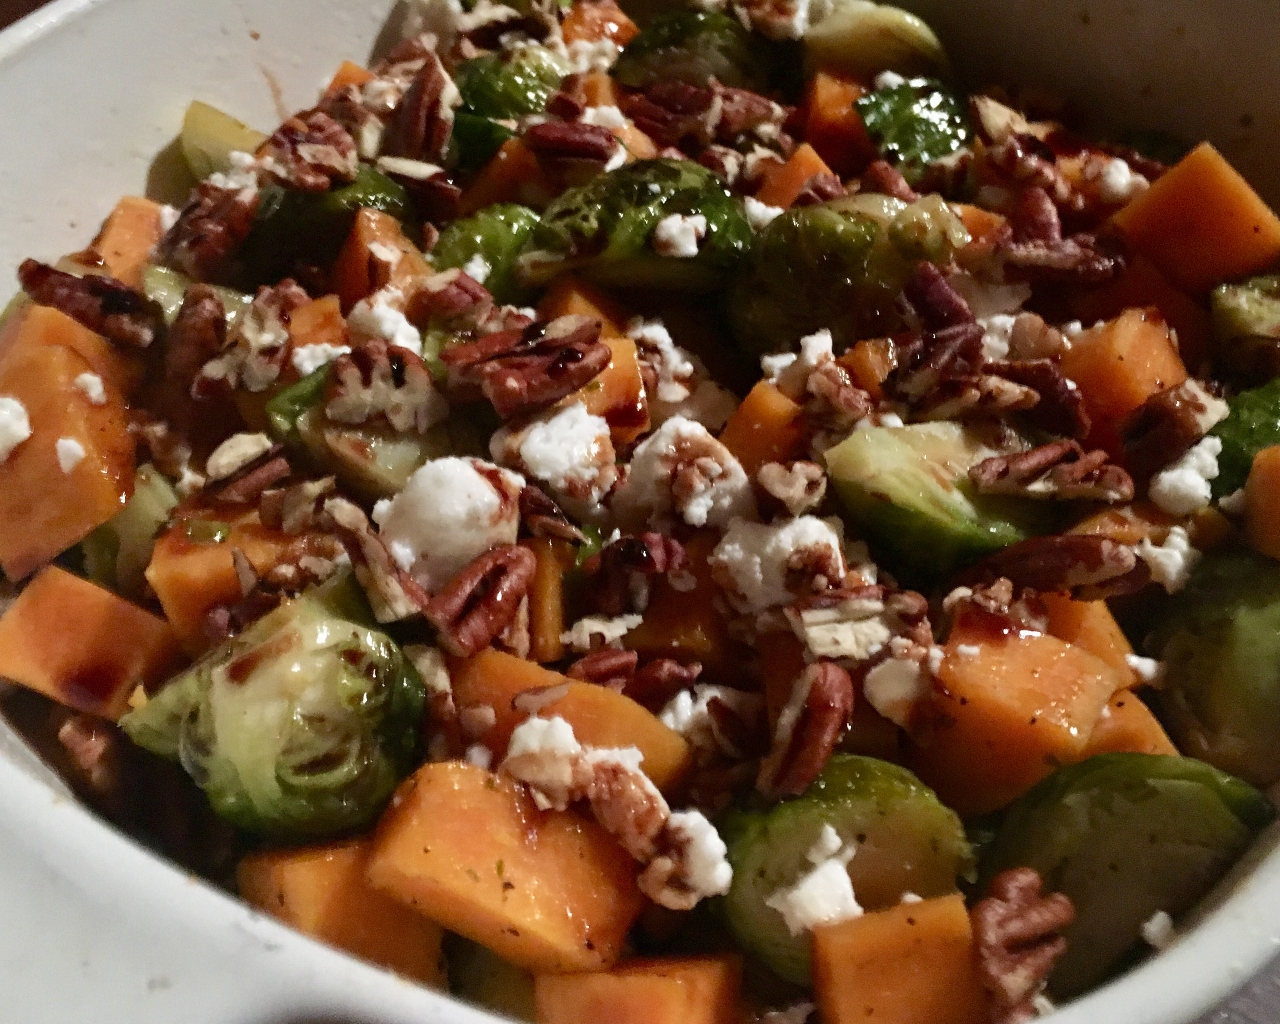 Balsamic Glazed Sweet Potatoes & Brussels Sprouts